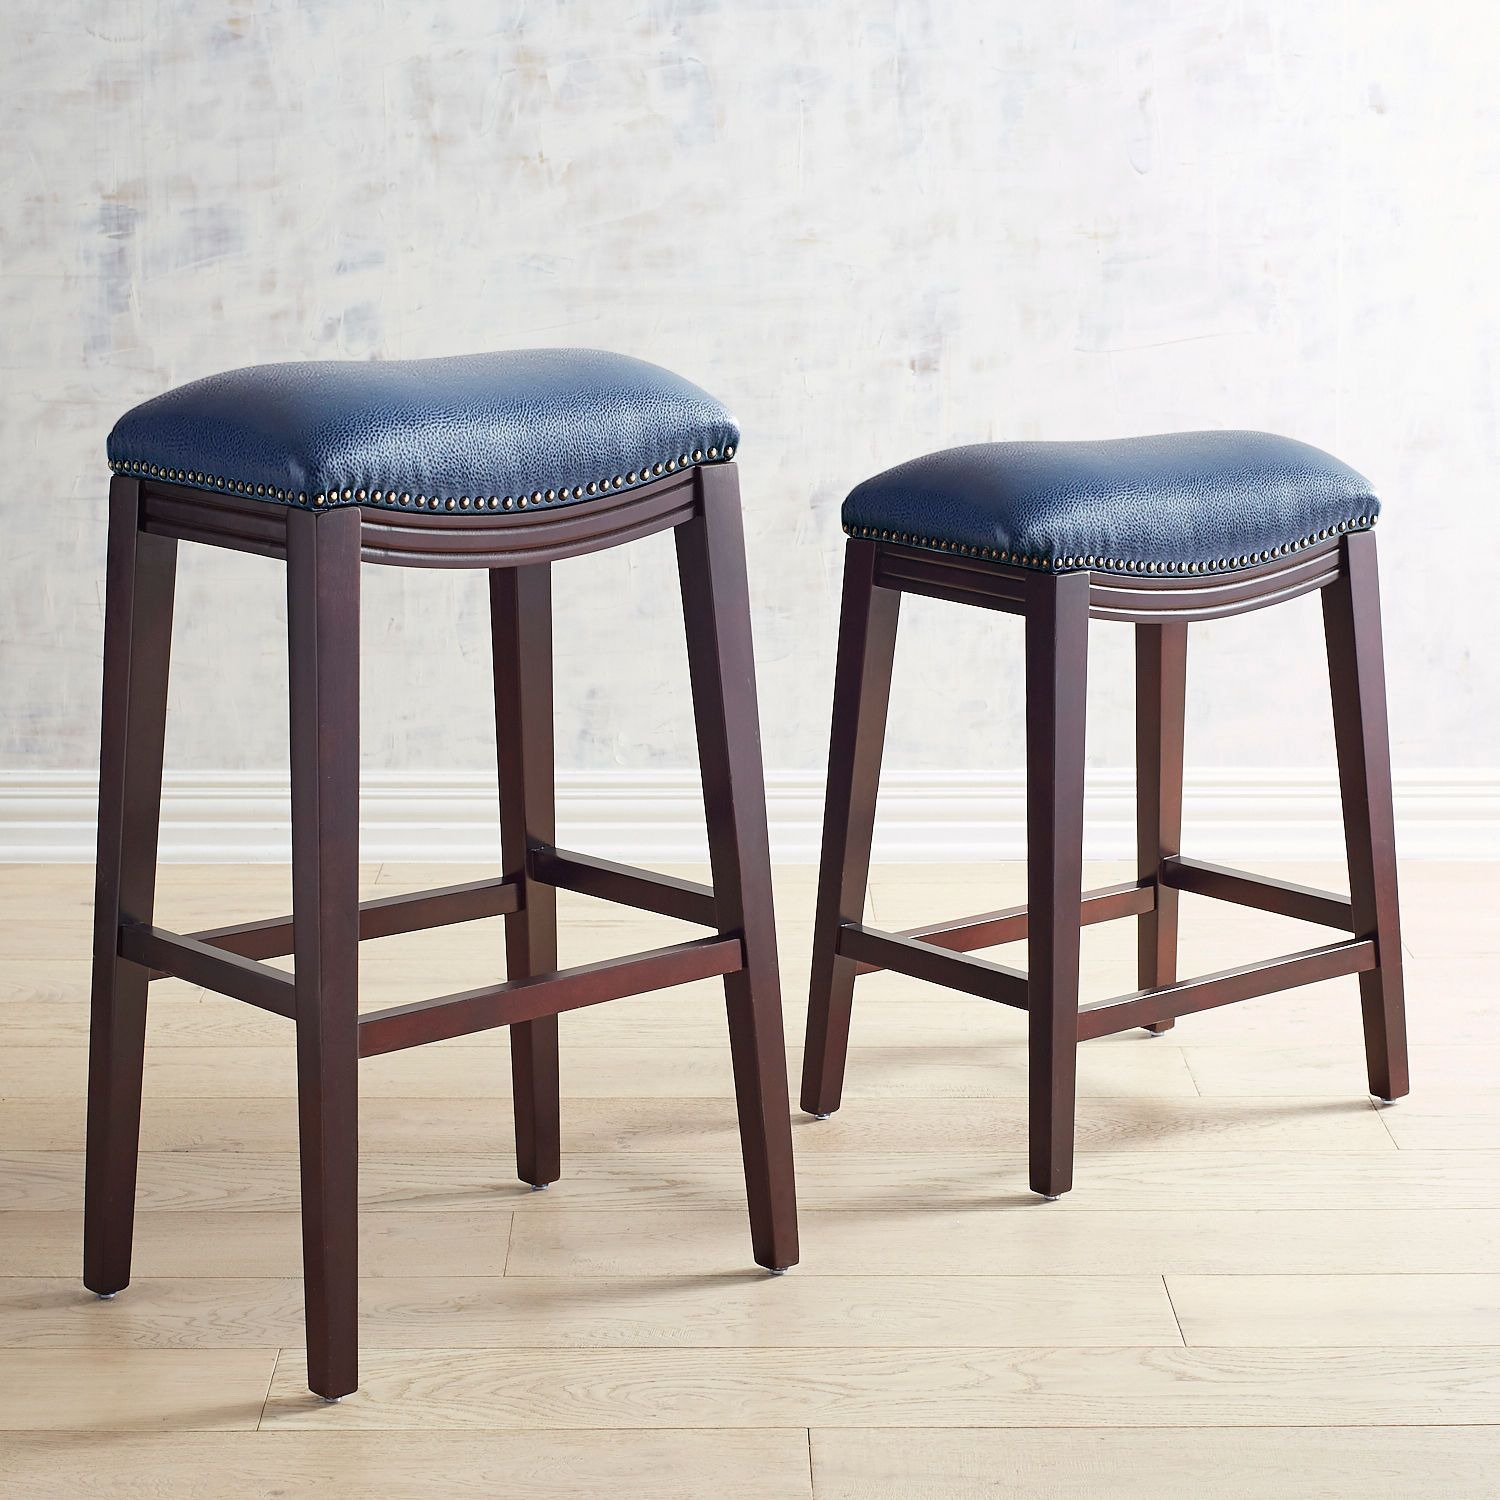 Fantastic Halsted Navy Blue Counter Bar Stool With Espresso Legs Gmtry Best Dining Table And Chair Ideas Images Gmtryco